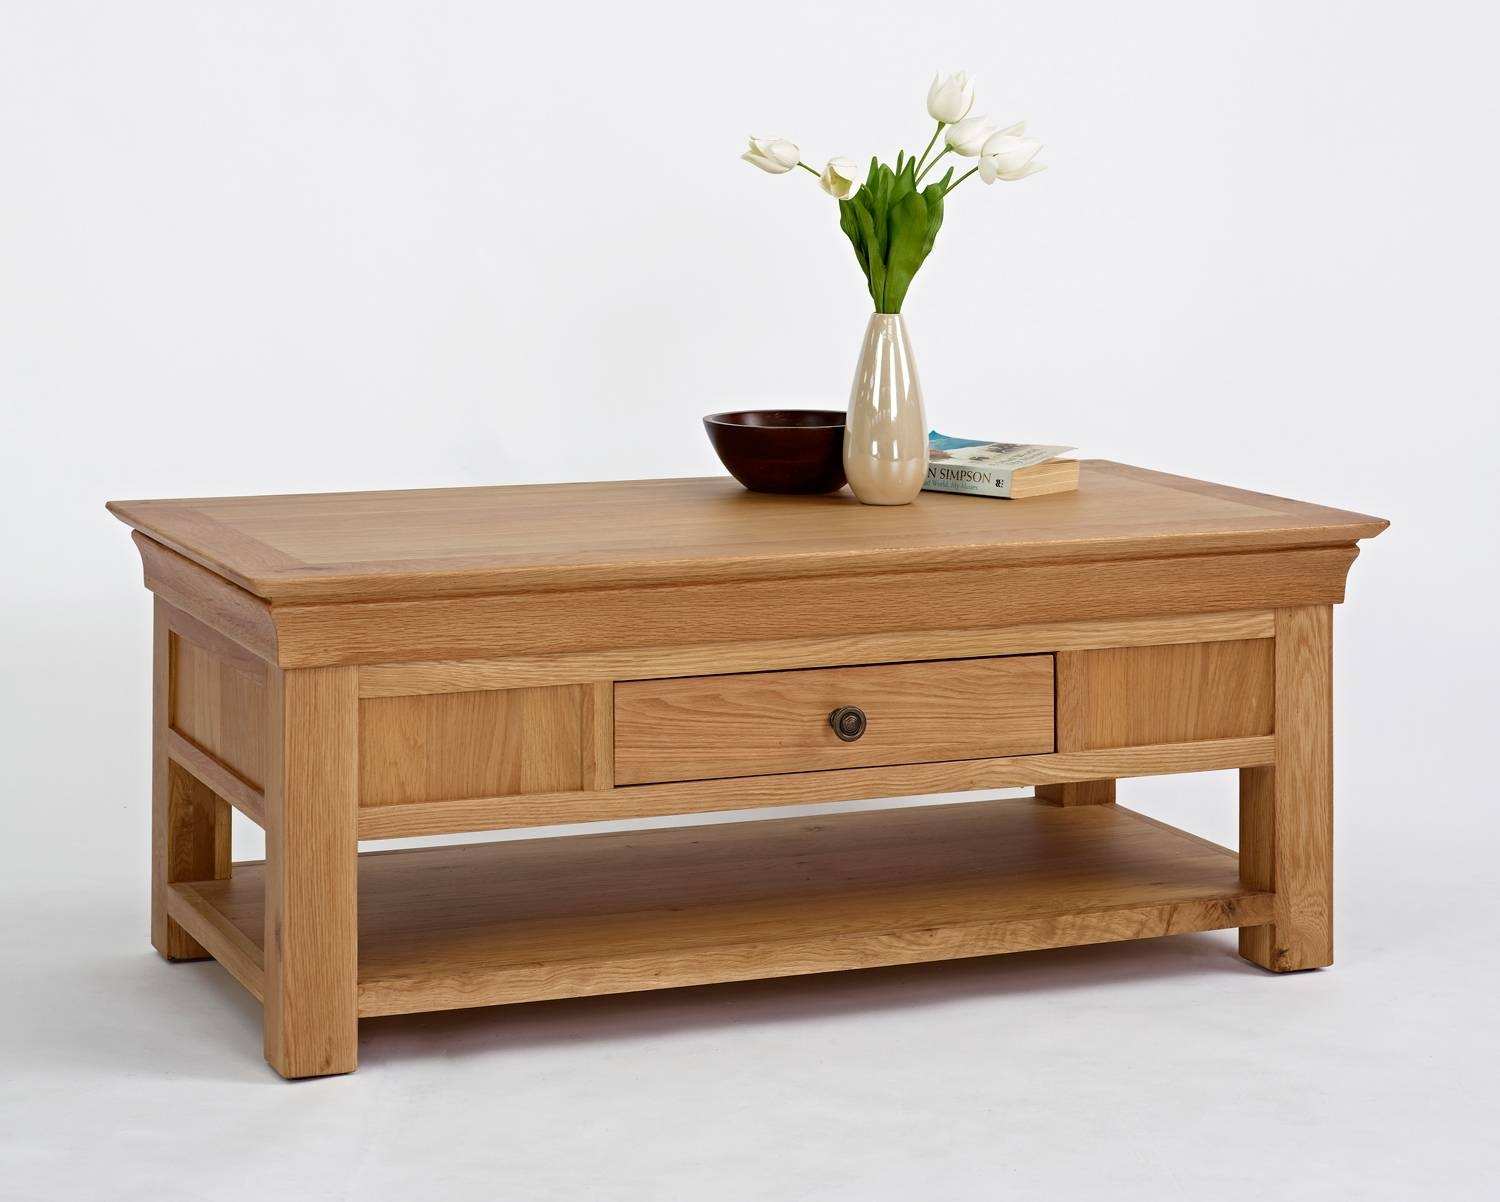 Oak Coffee Tables + Other Living Room Furniture - Oak Furniture within Low Oak Coffee Tables (Image 13 of 15)